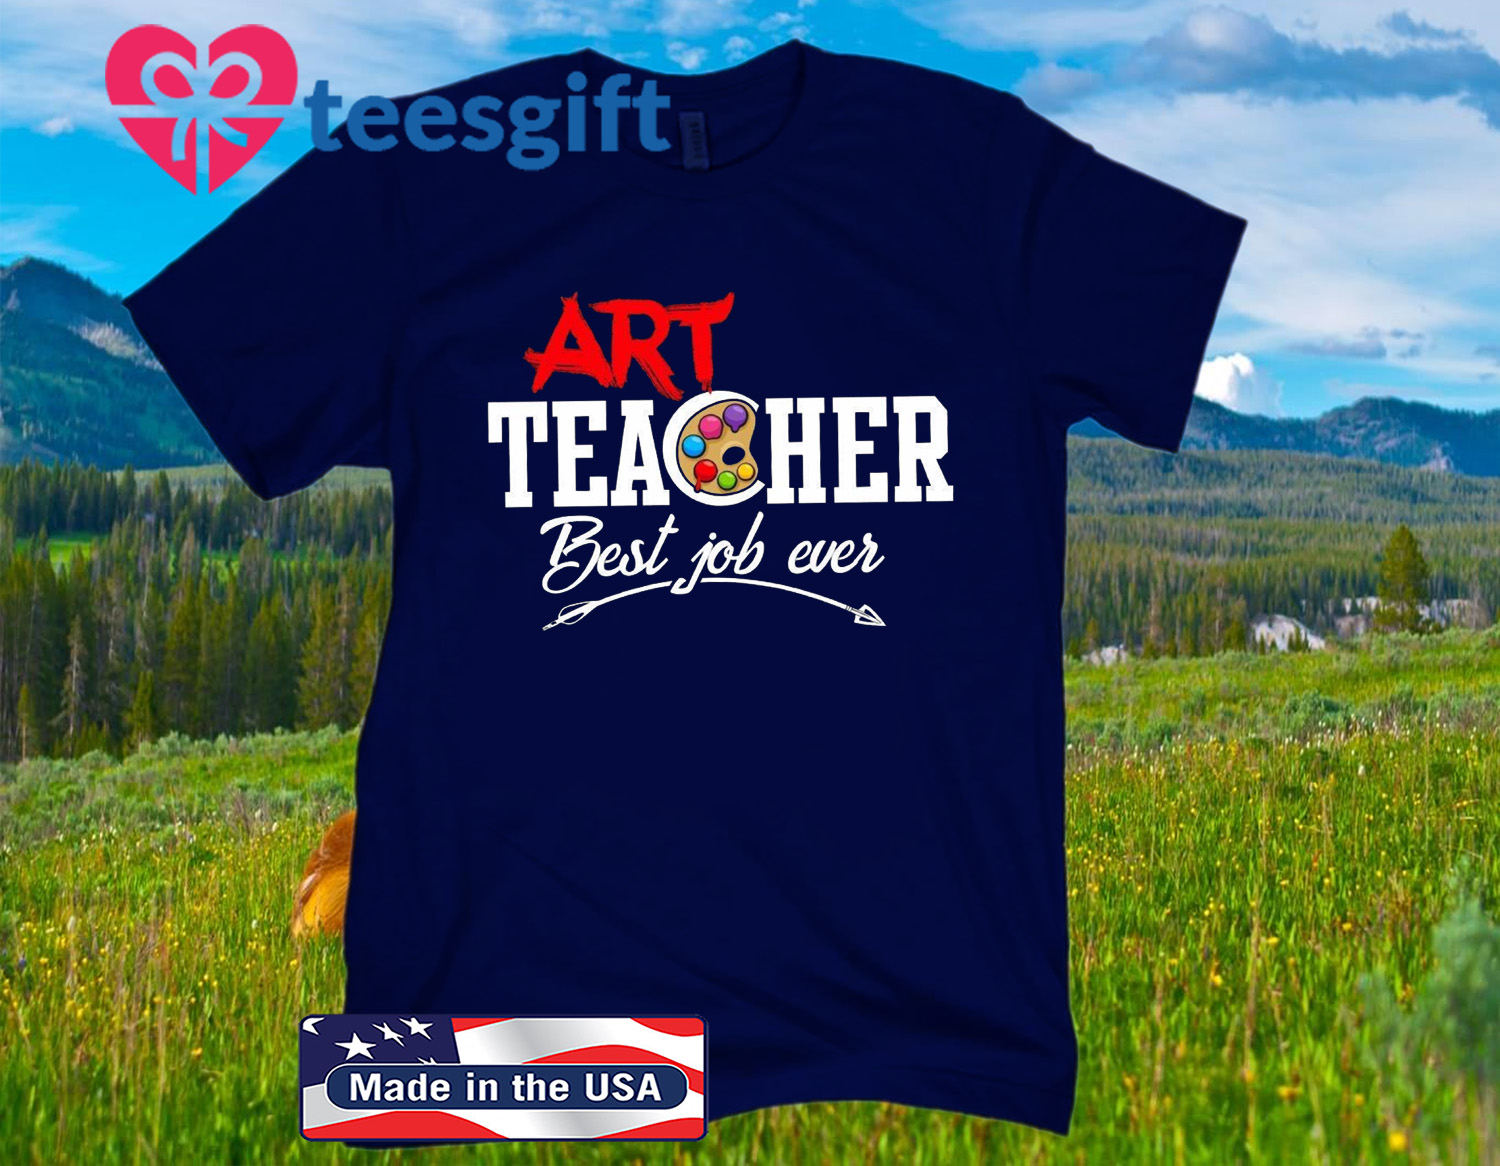 ART TEACHER BEST JOB EVER OFFICIAL T-SHIRT